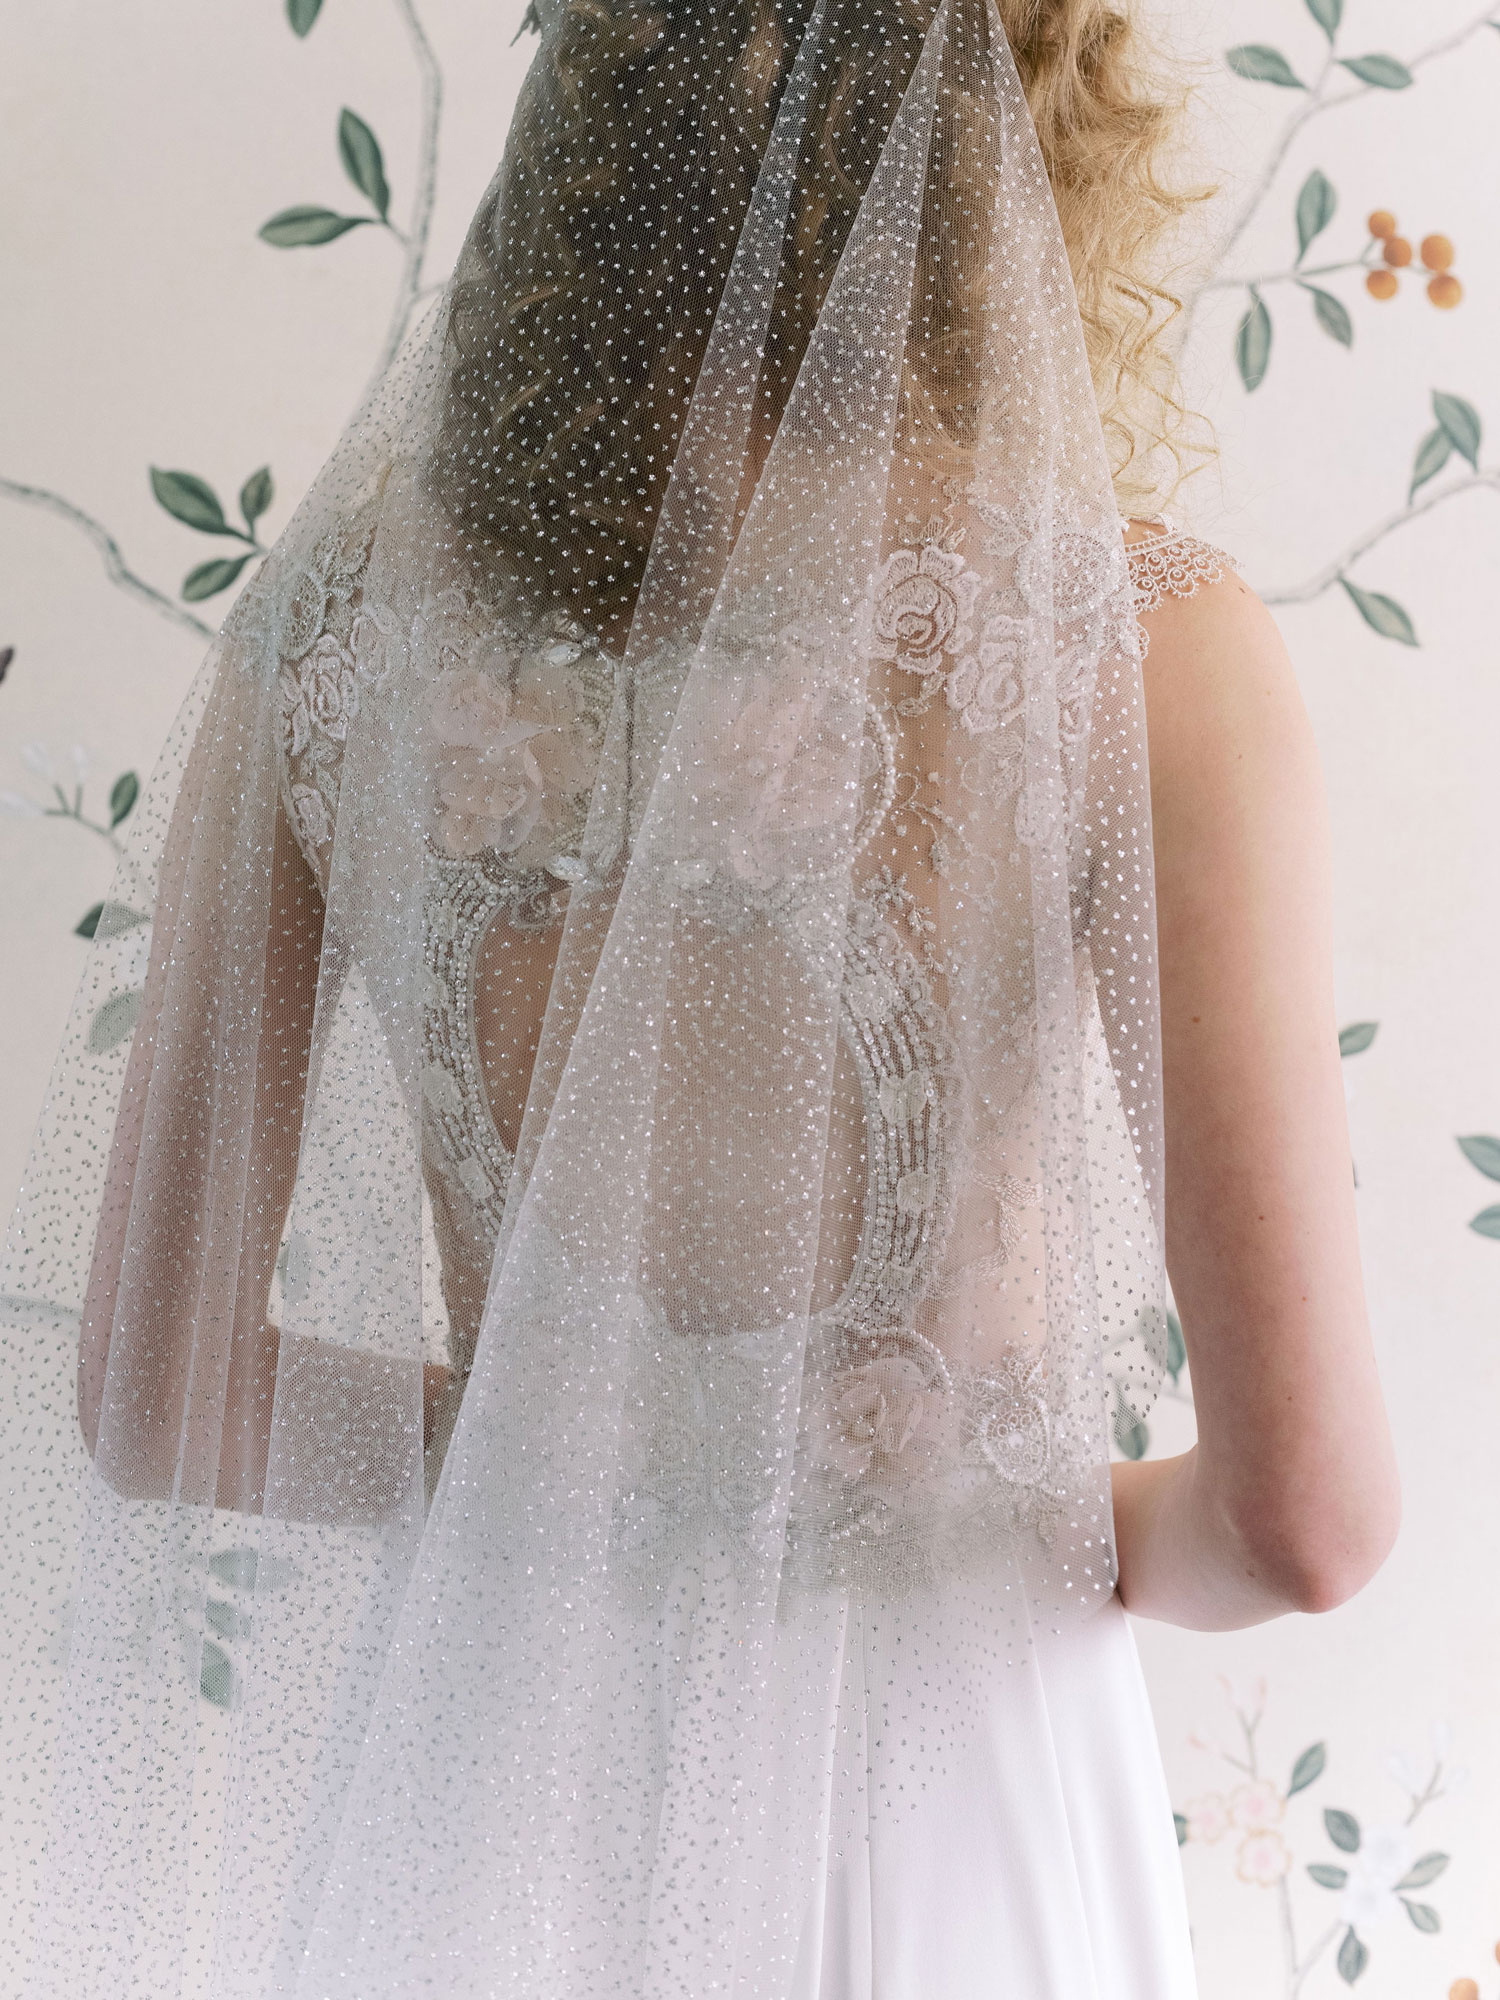 Claire Pettibone Evolution 2020 bridal collection Nera keyhole beaded wedding dress veil